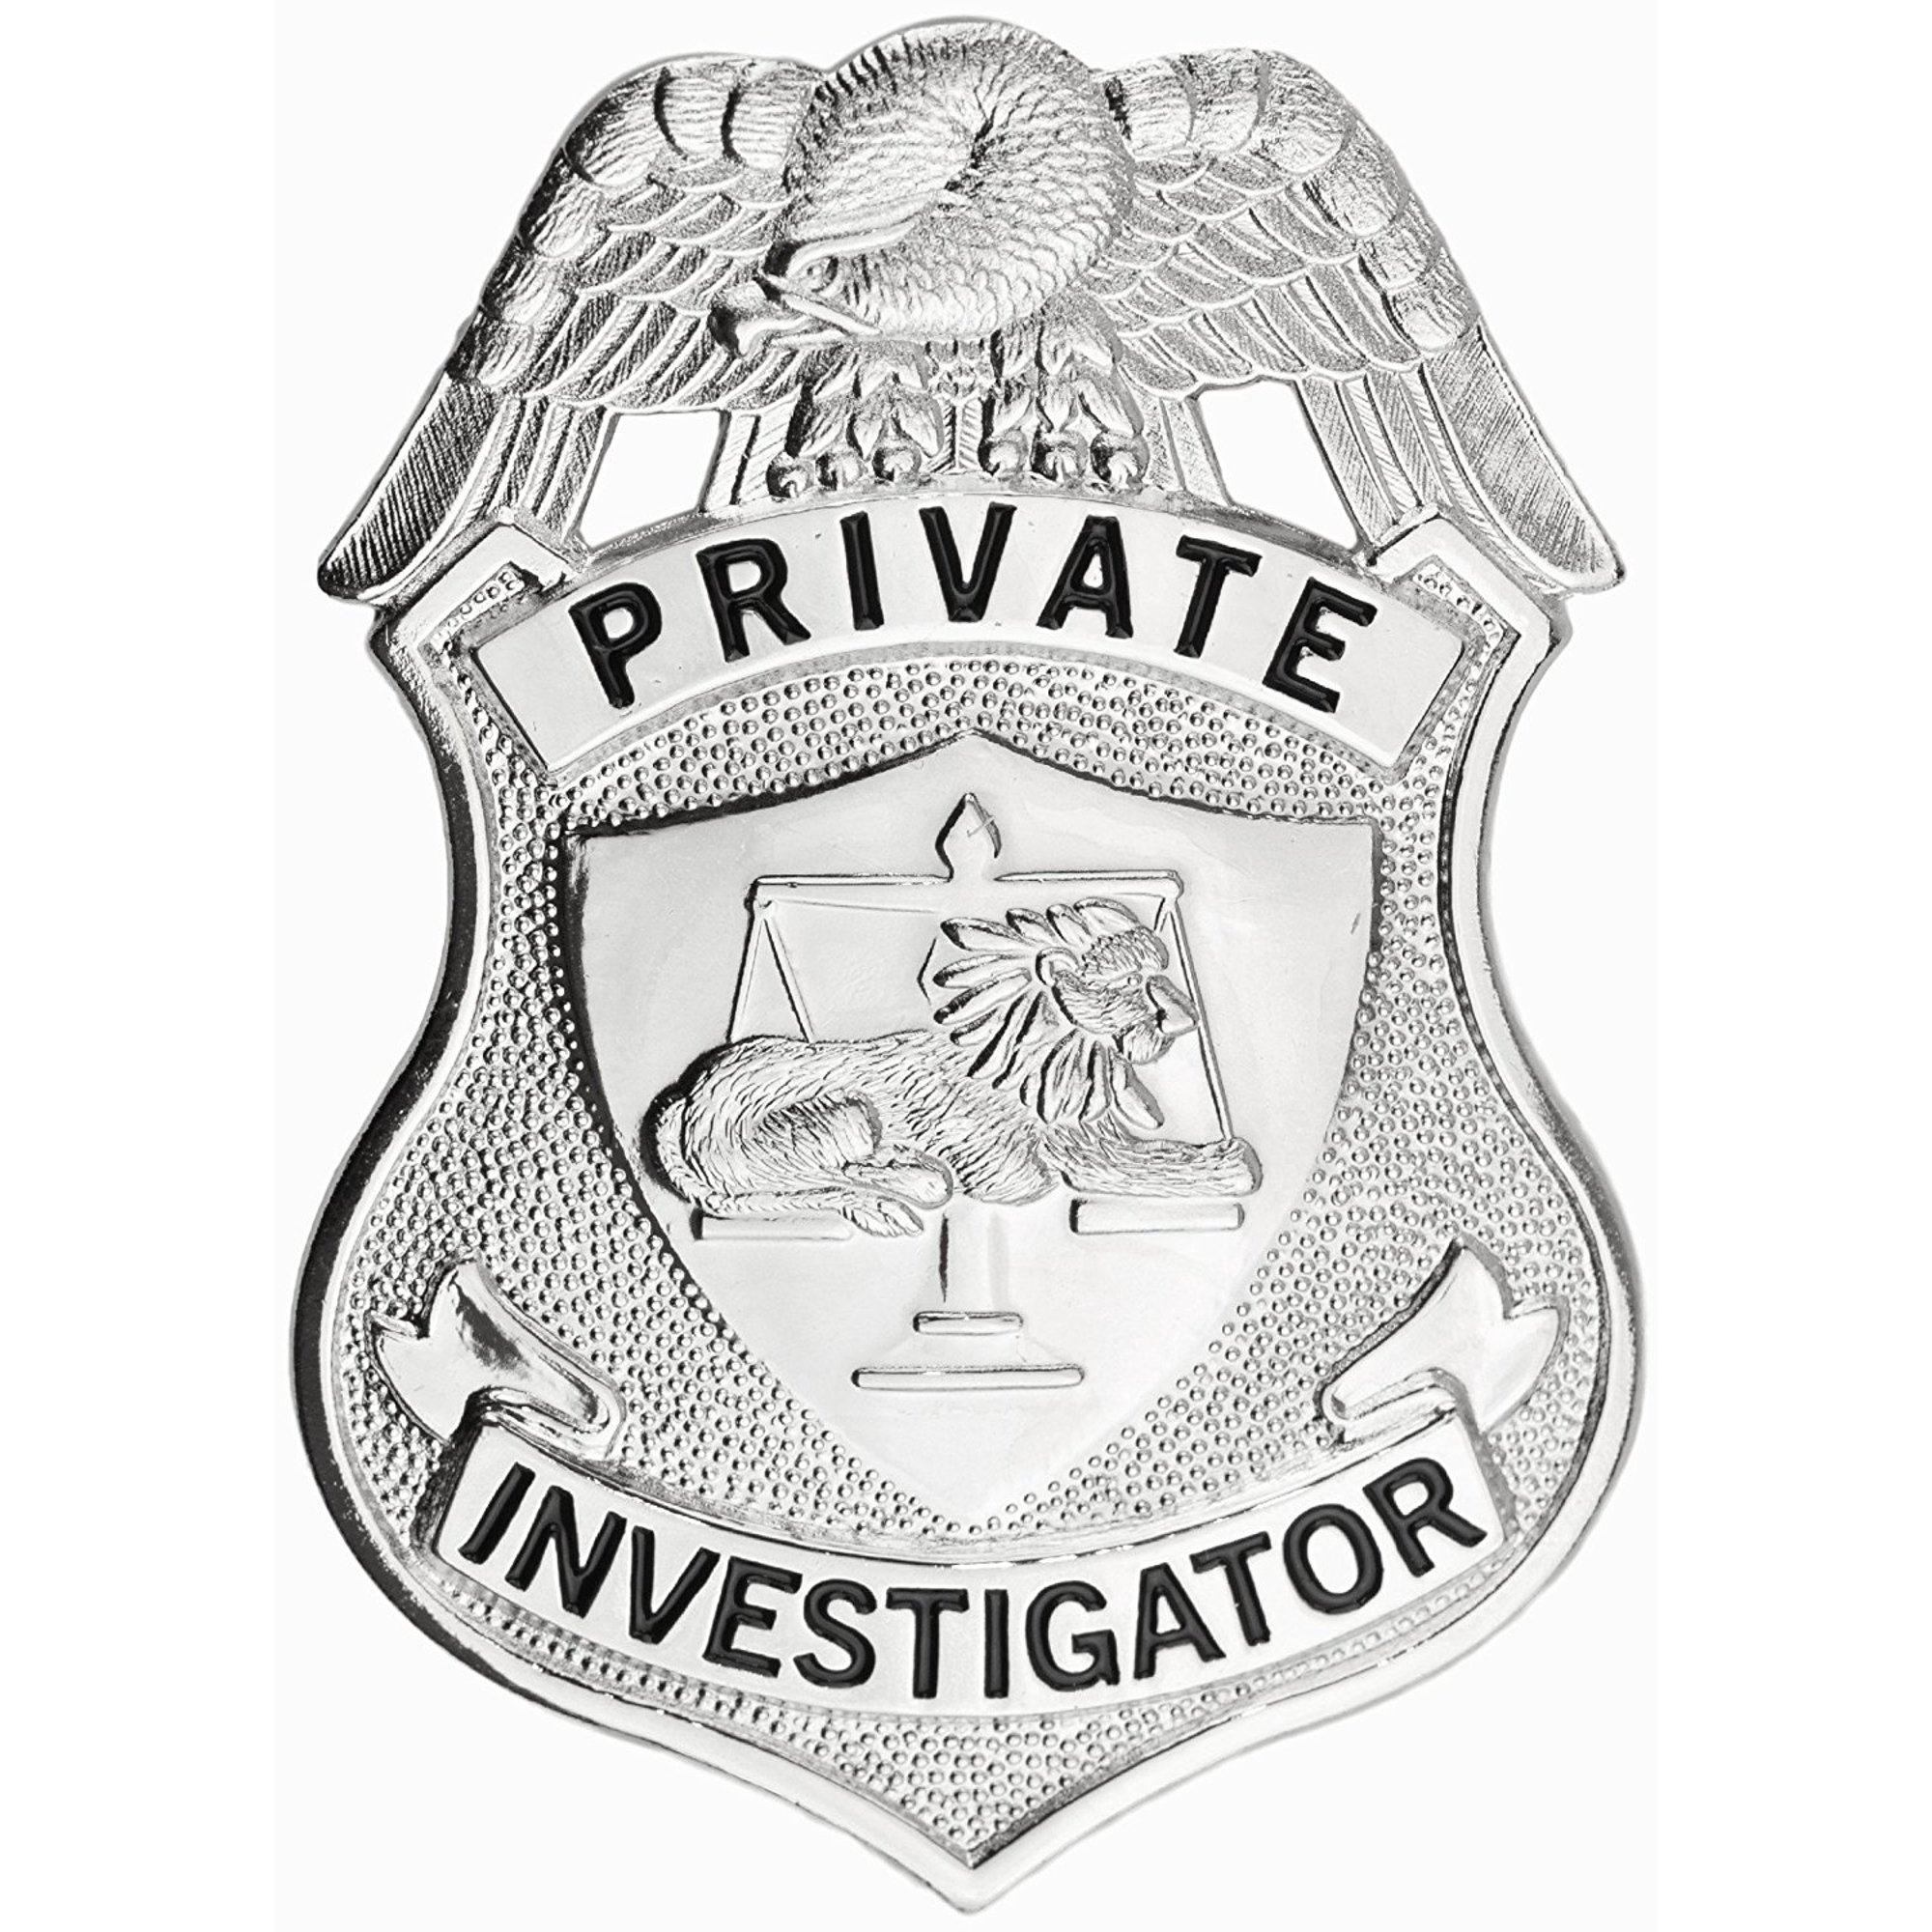 93485fb5a32 Tactical 365® Operation First Response Private Investigator Shield Badge -  Nickel